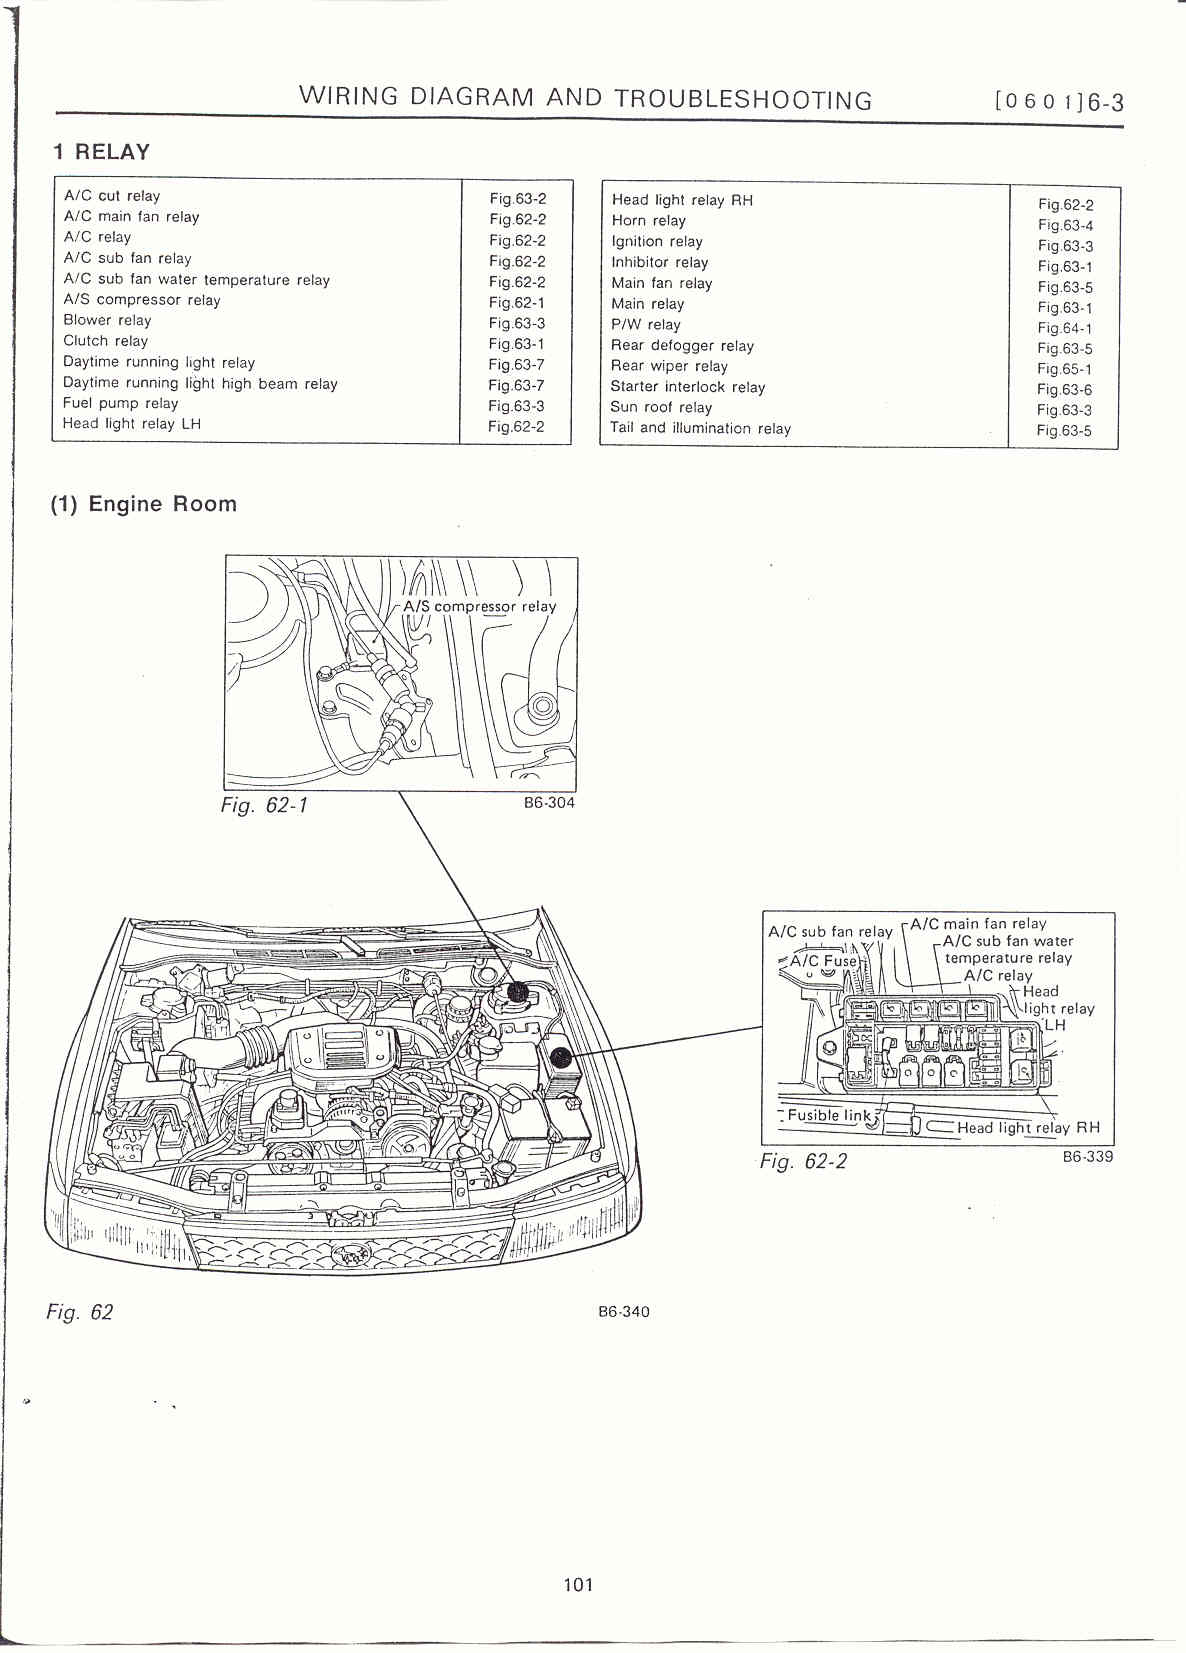 1998 Subaru Outback Fuse Box Location : Subaru legacy fuse diagram wiring images